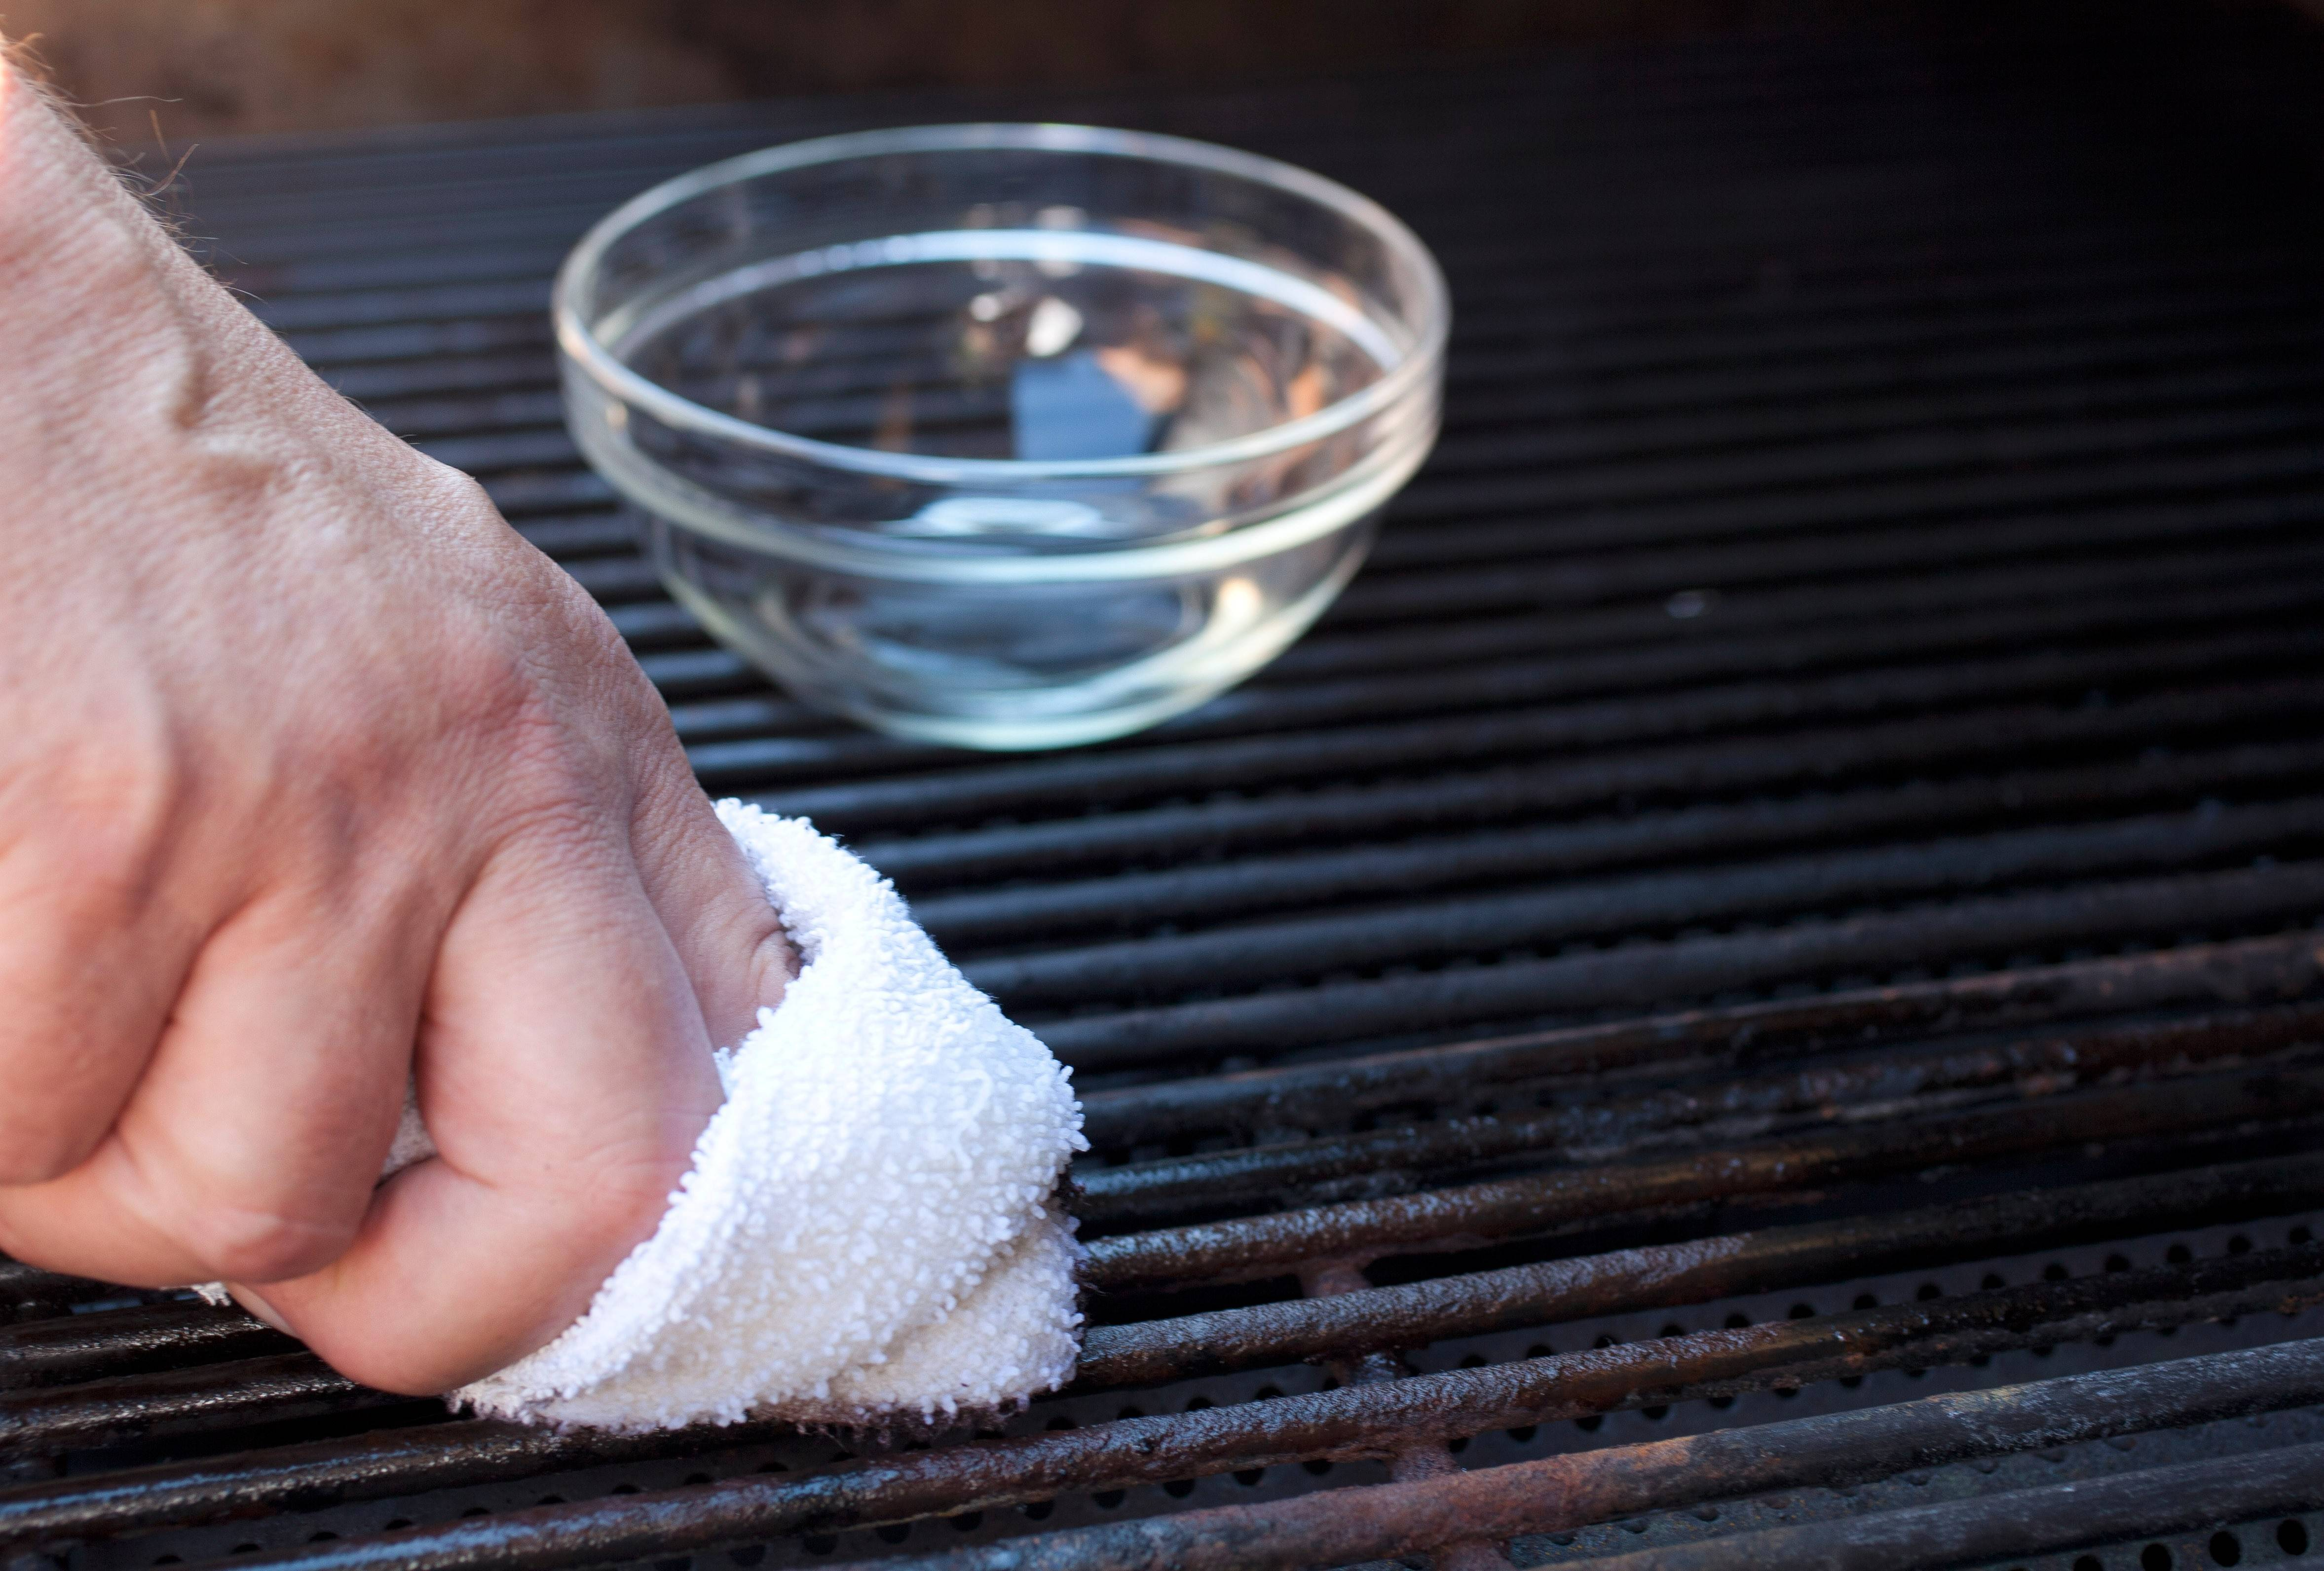 Grilling University: How to clean, season and maintain your grill